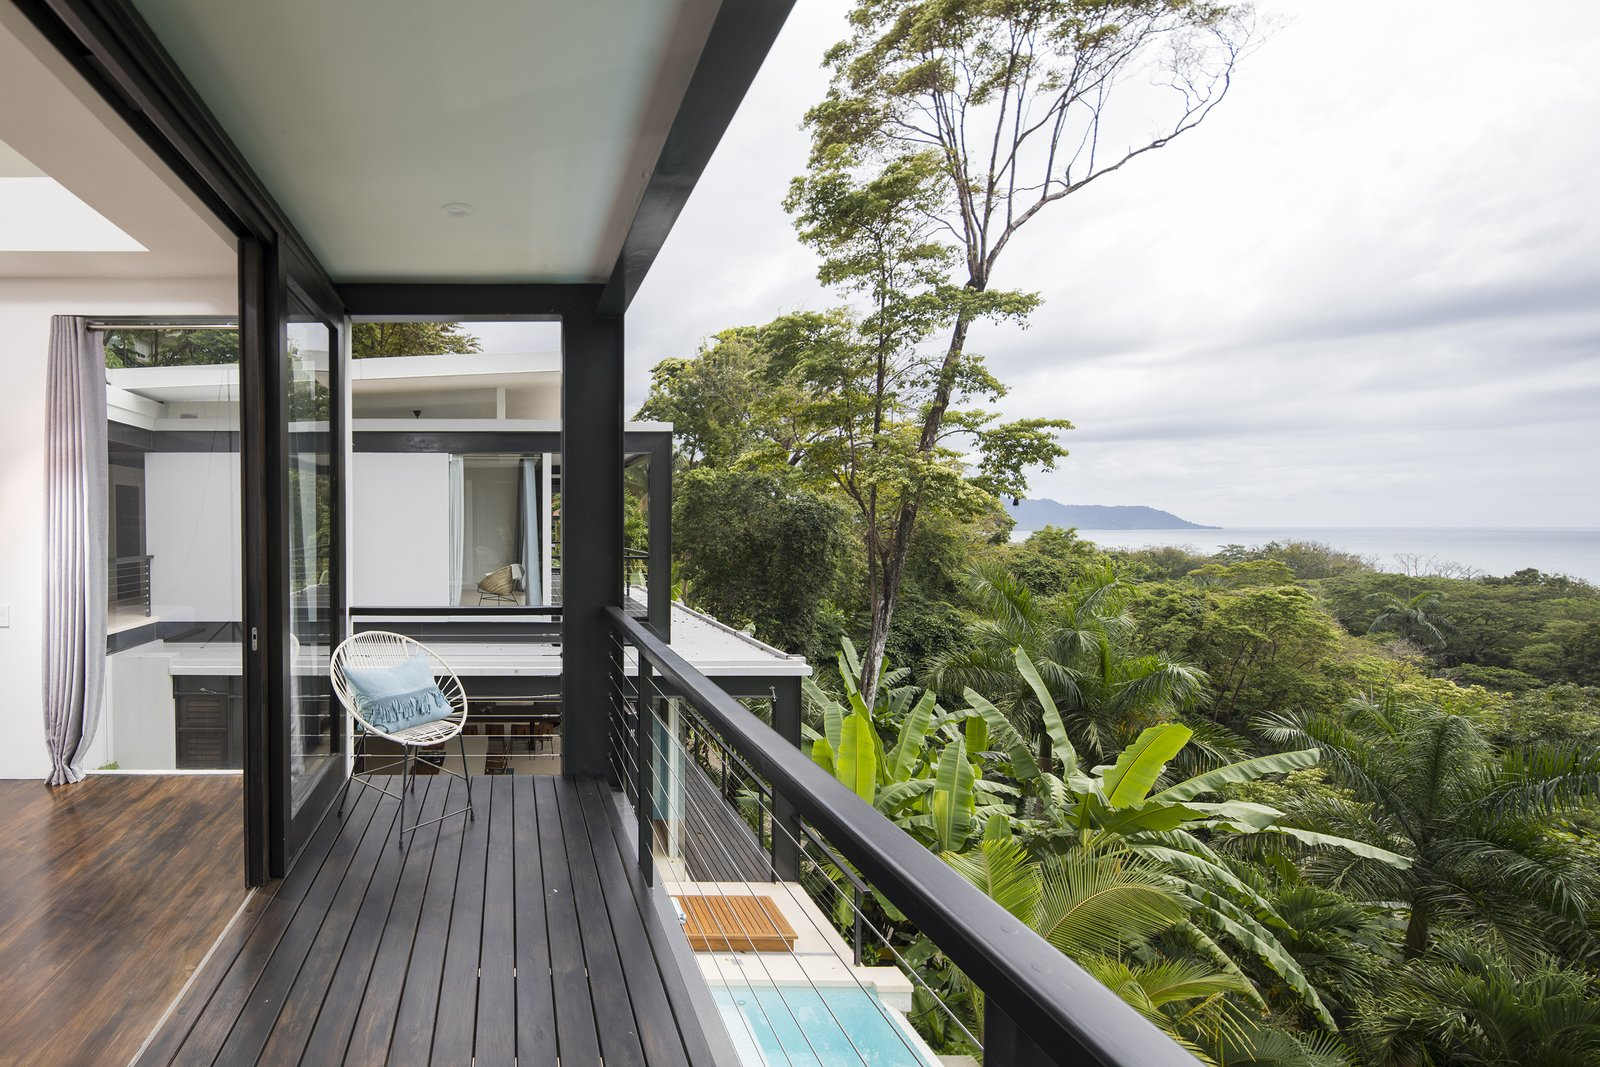 Outdoor, Wood, Metal, and Trees Unparalleled views of the Costa Rican coast can be enjoyed from the bedroom balcony.  Best Outdoor Metal Photos from Slip Away to These Sleek New Villas in a Costa Rican Forest